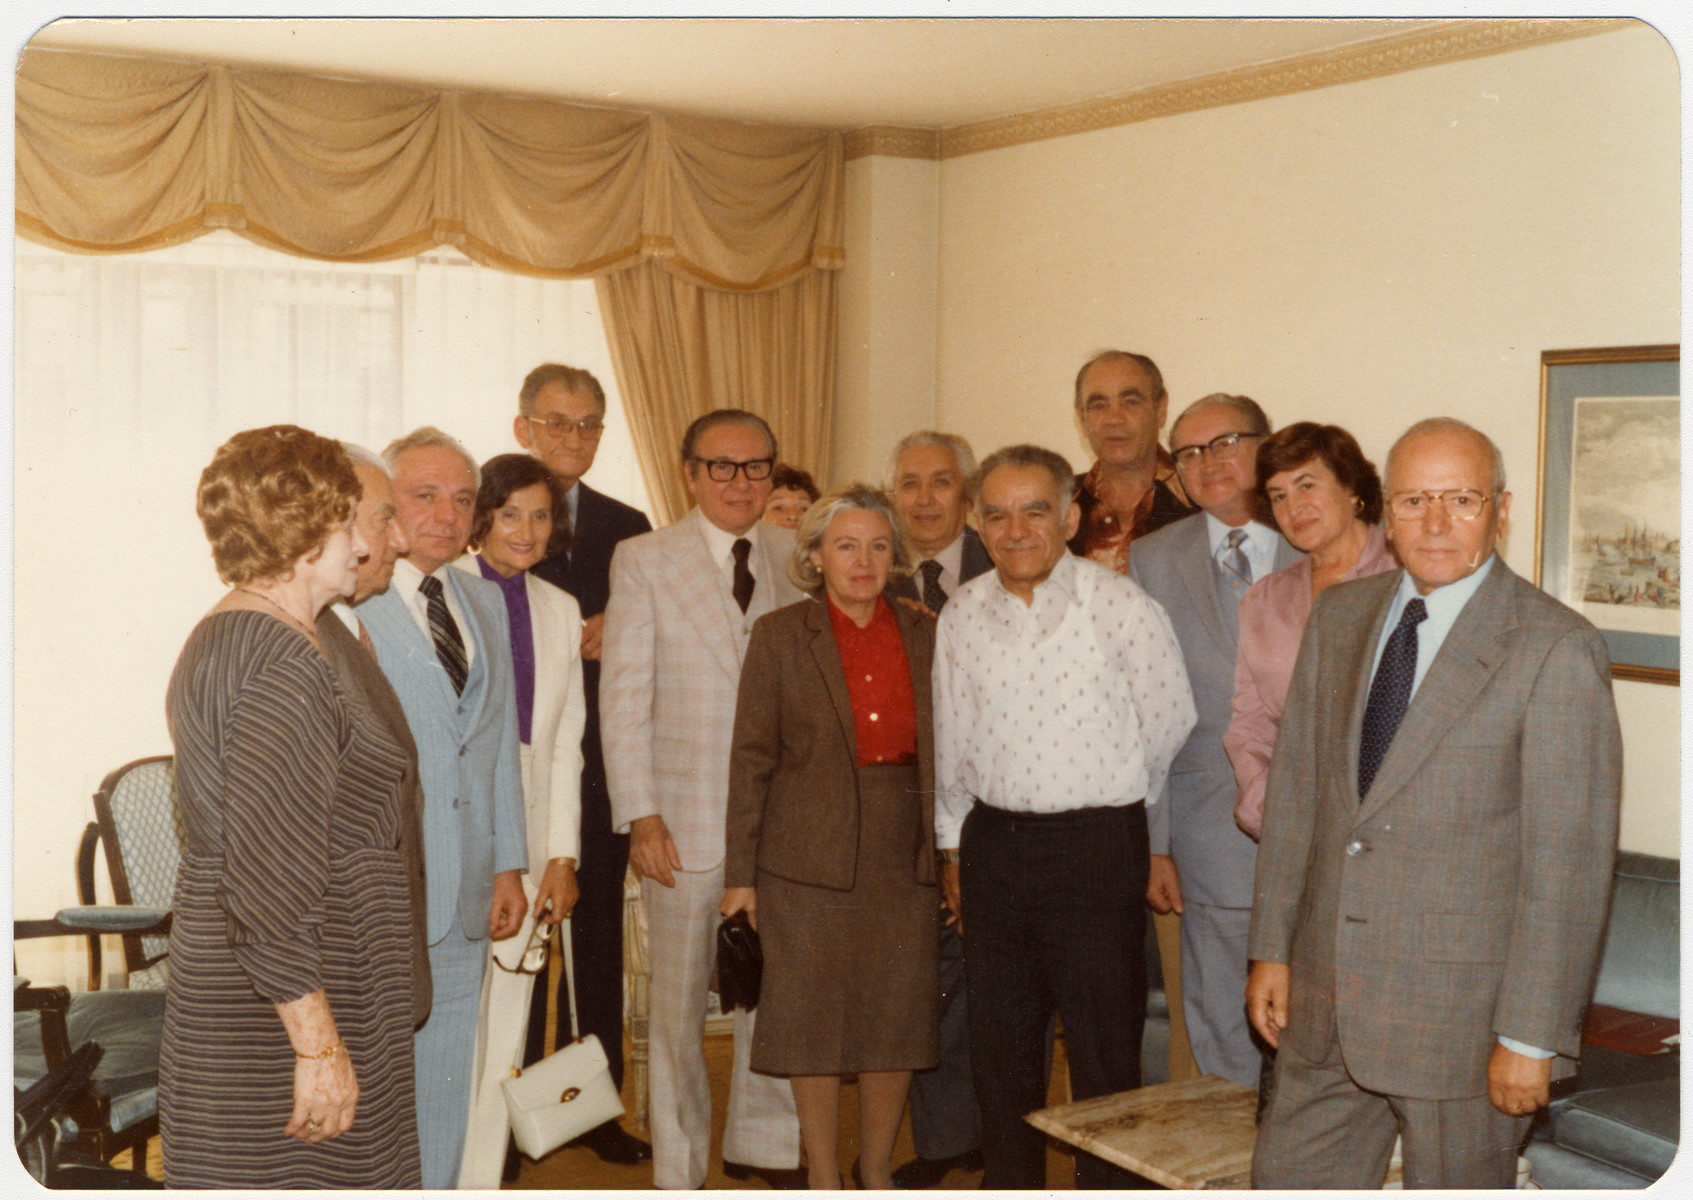 Reunion of Bielski partisans in New York.    Tuvia Bielski is fifth from the left.  Zus Bielski is fourth from the right.  Sonia Aushman is fourth from the left.  Isaac Mendelson is on the far right.